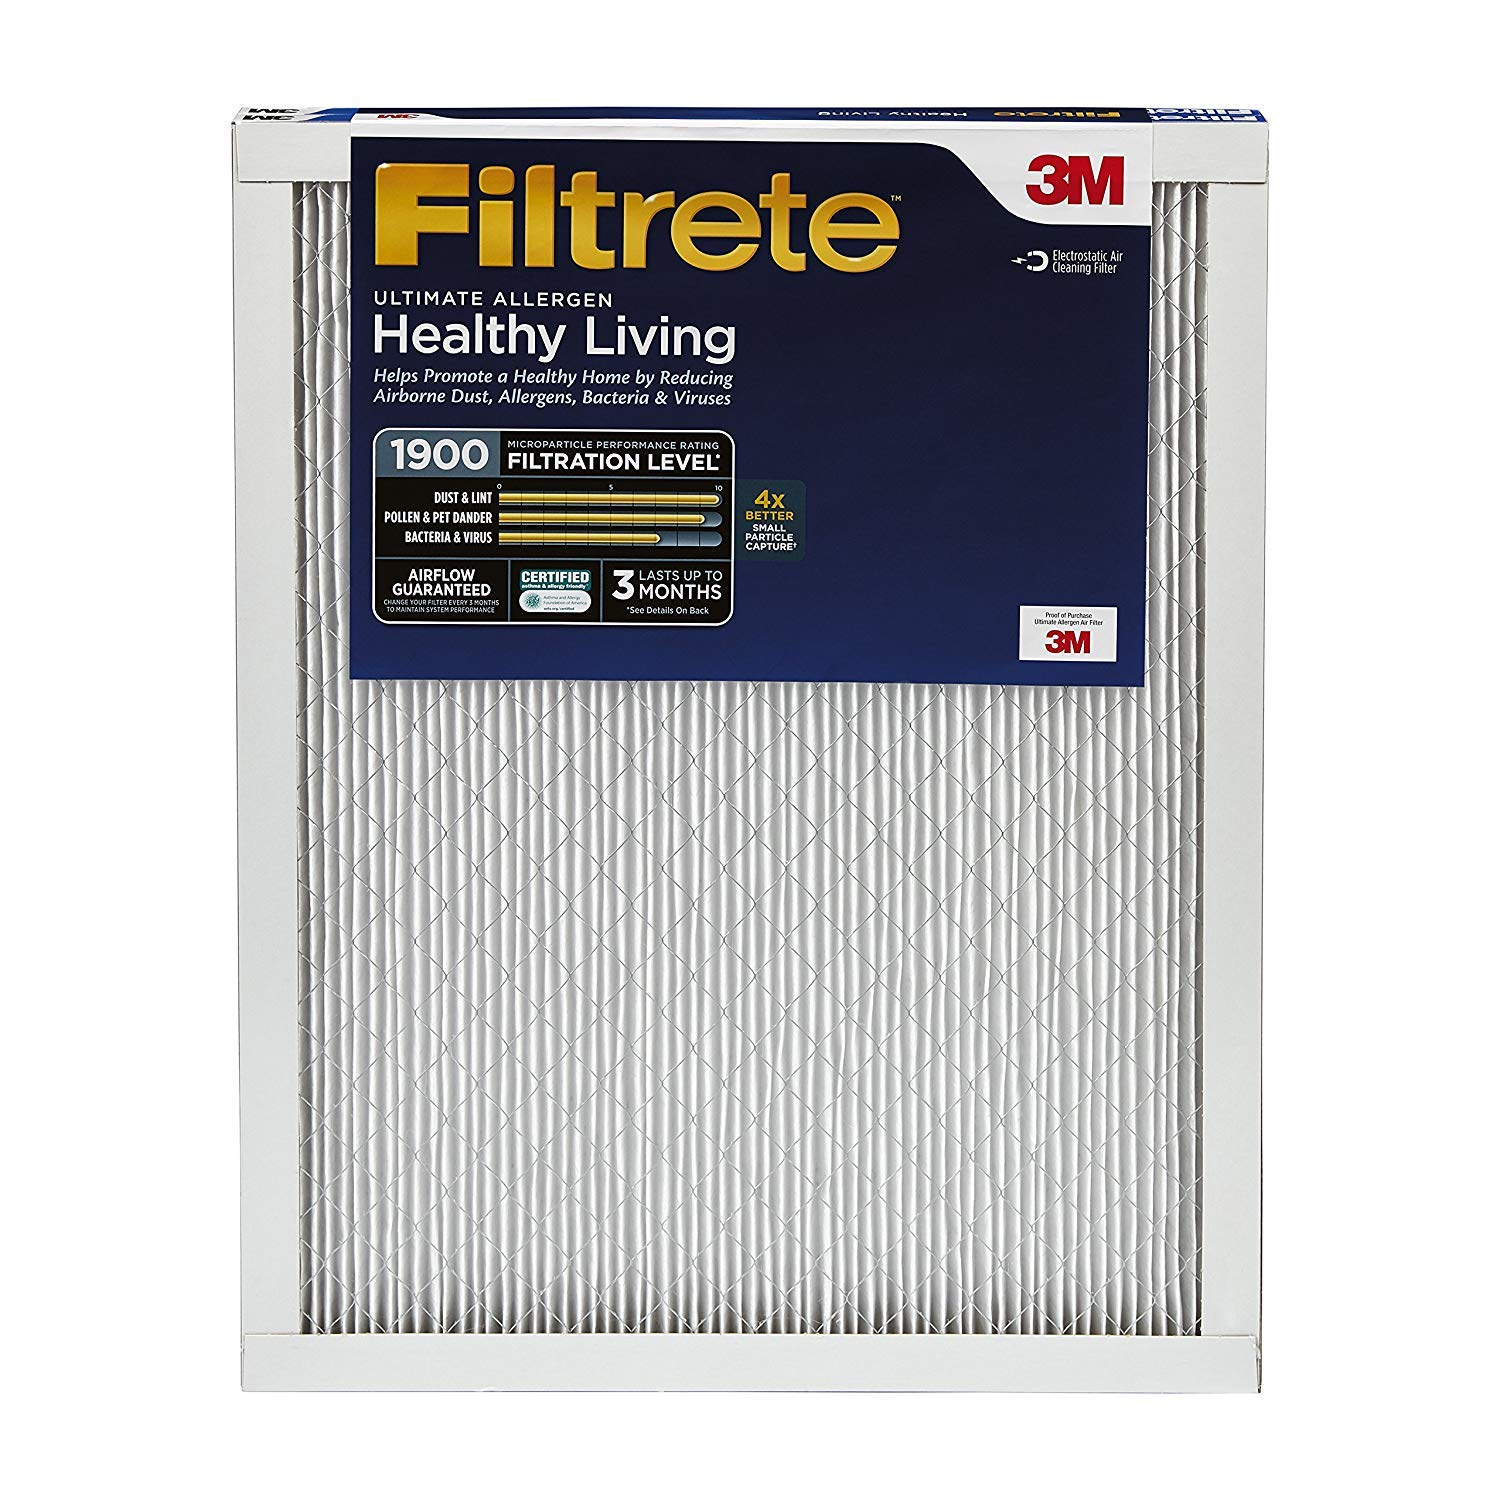 Filtrete MPR 1900 12x12x1 AC Furnace Air Filter, Healthy Living Ultimate Allergen, 2-Pack